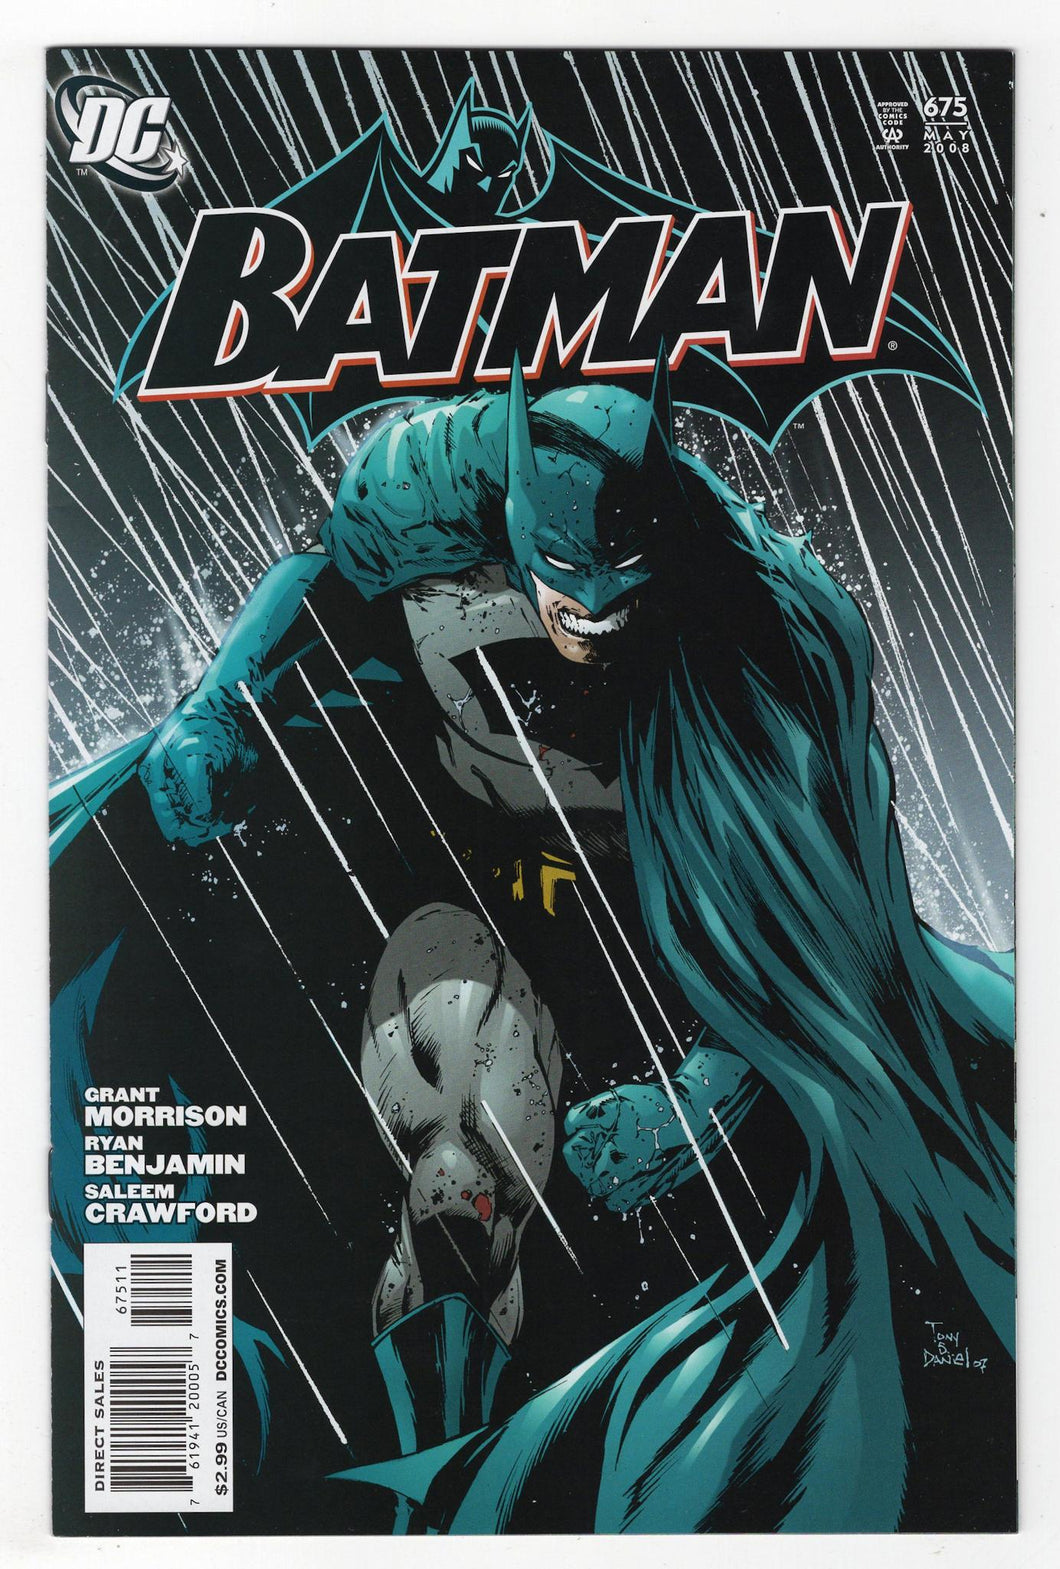 Batman #675 Cover Front